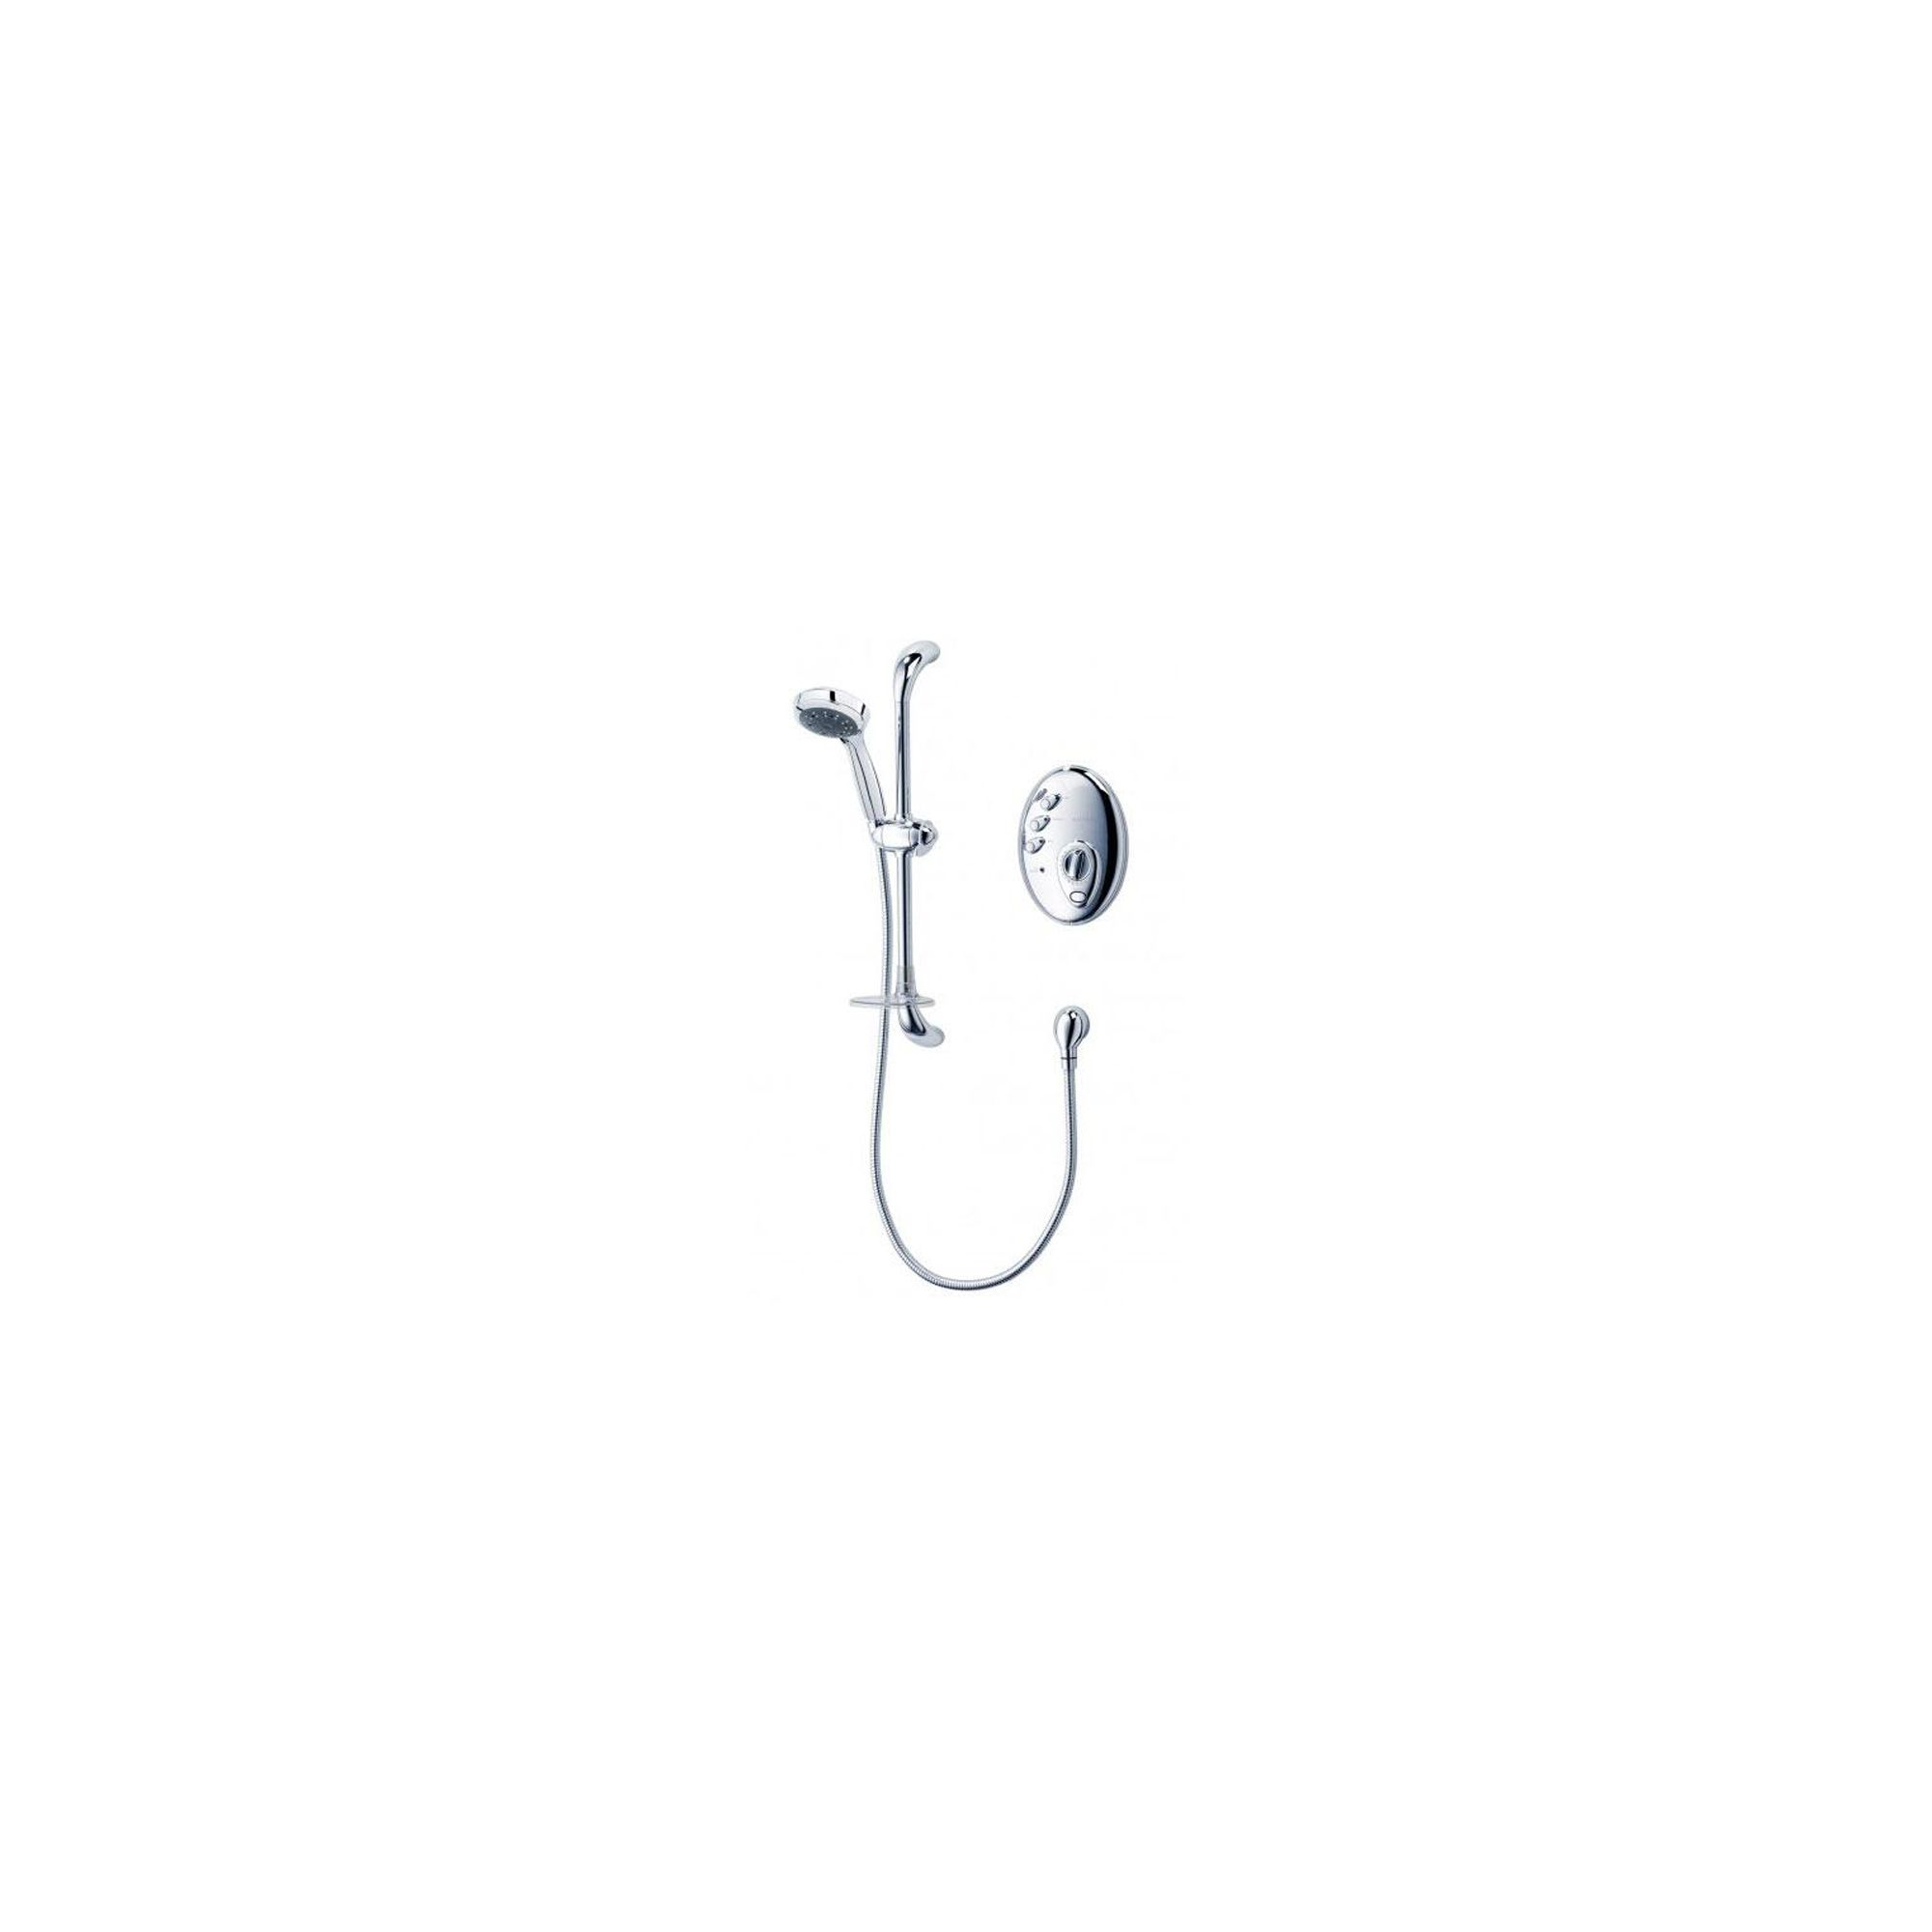 Triton Aspirante Digital Remote Electric Shower Chrome 9.5 kW at Tesco Direct